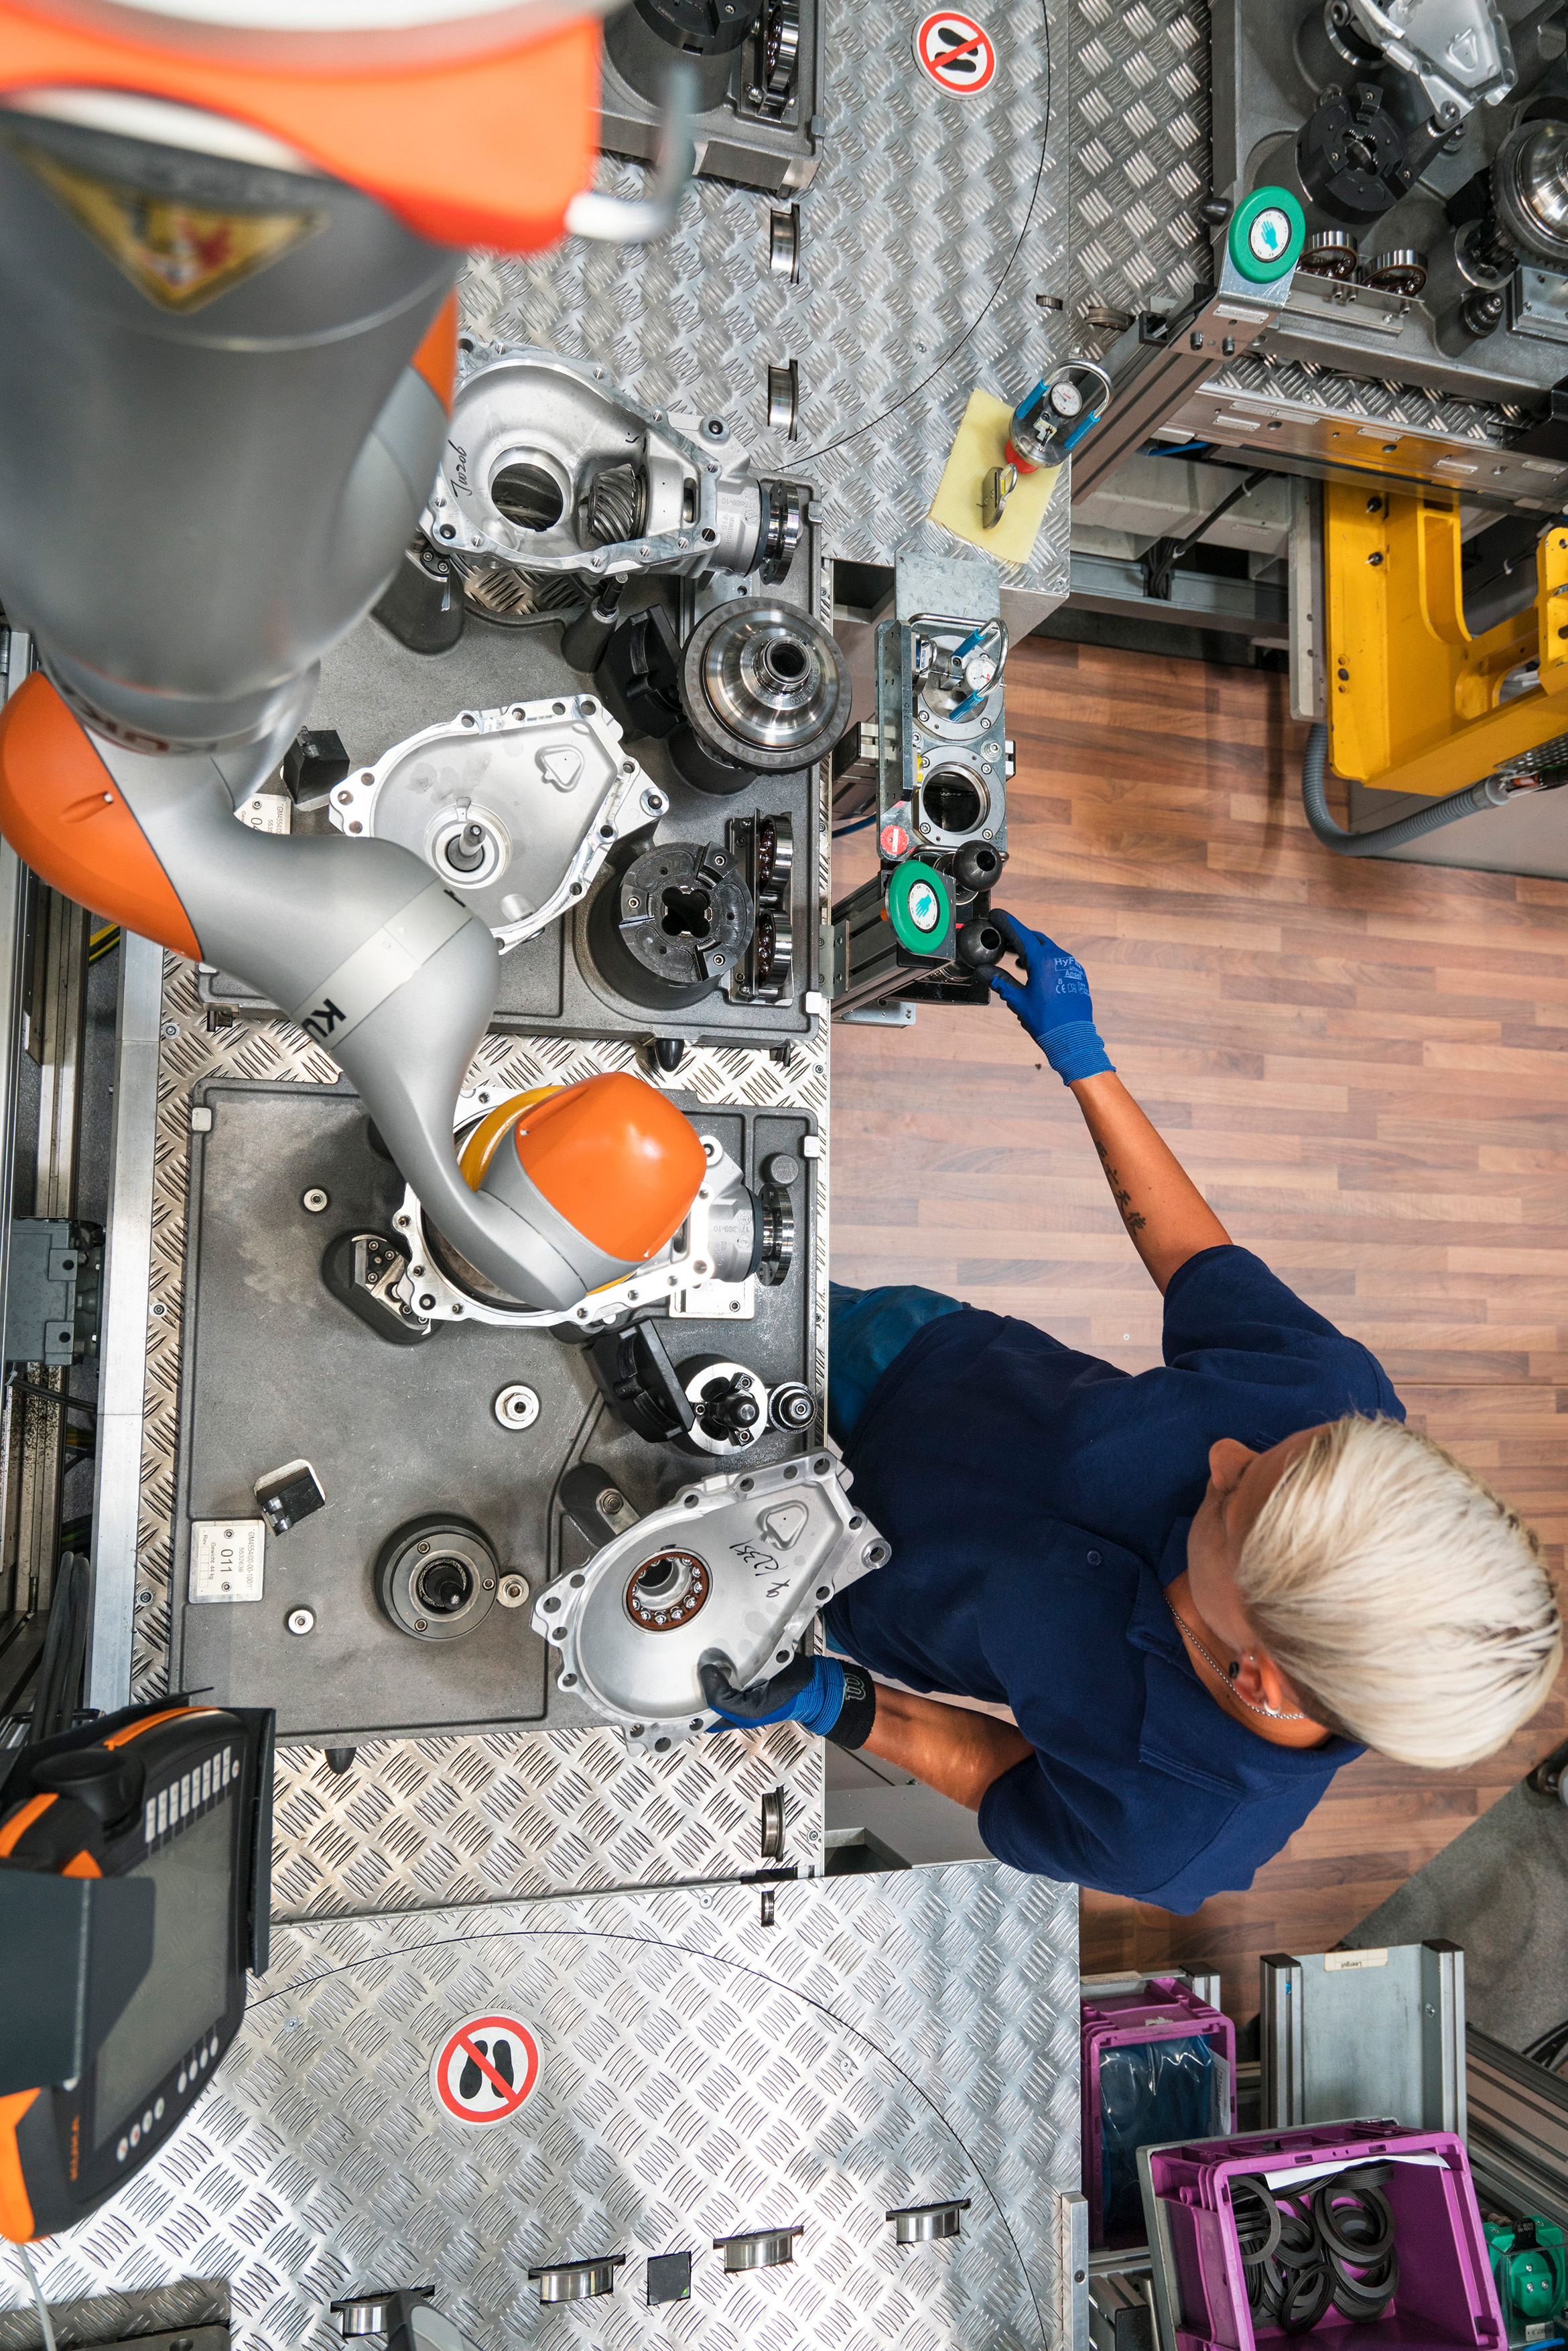 bmw worker with collaborative robot